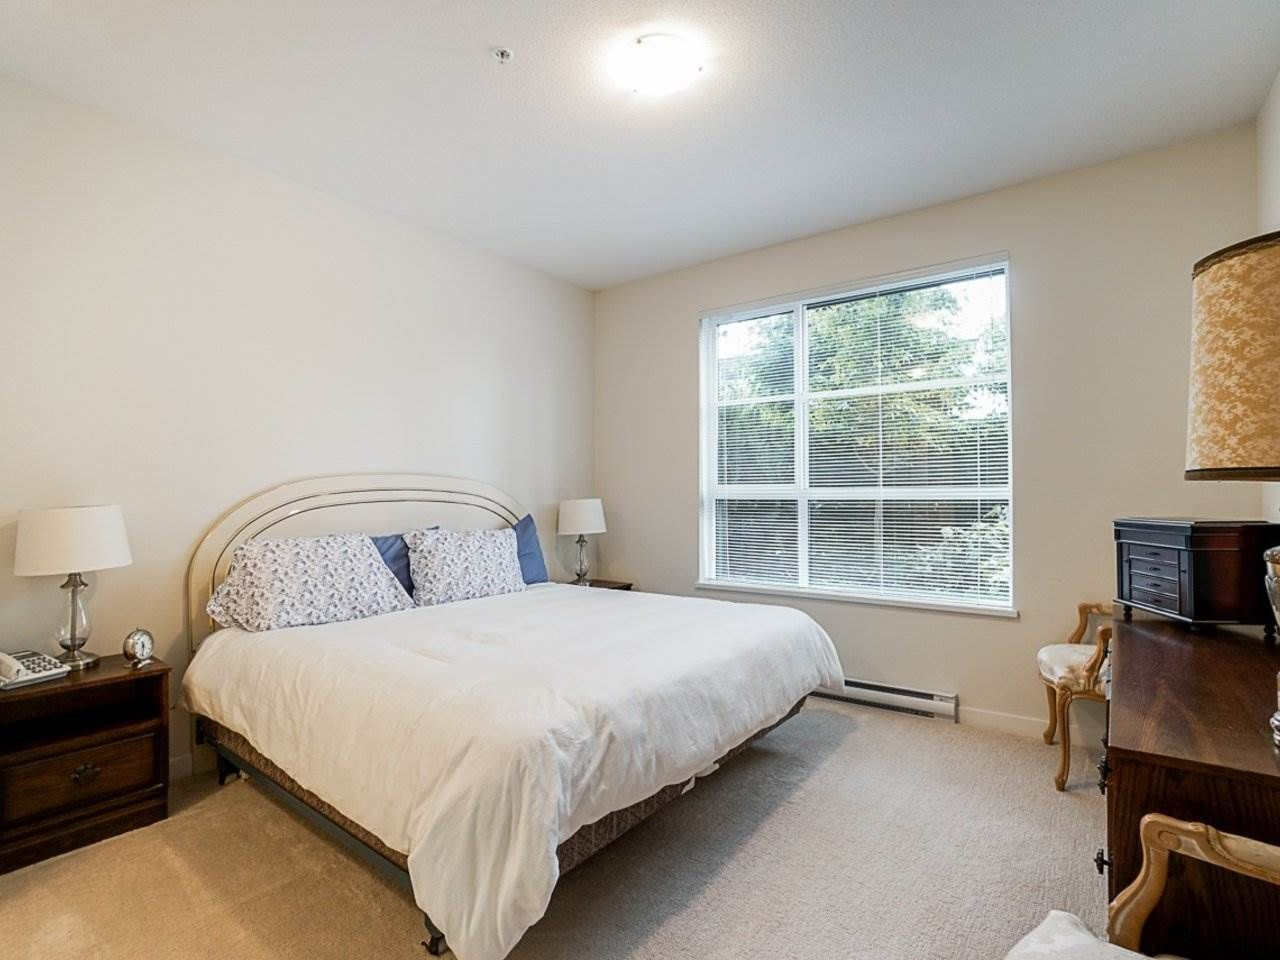 Photo 21: Photos: 108 1151 WINDSOR Mews in Coquitlam: New Horizons Condo for sale : MLS®# R2500299